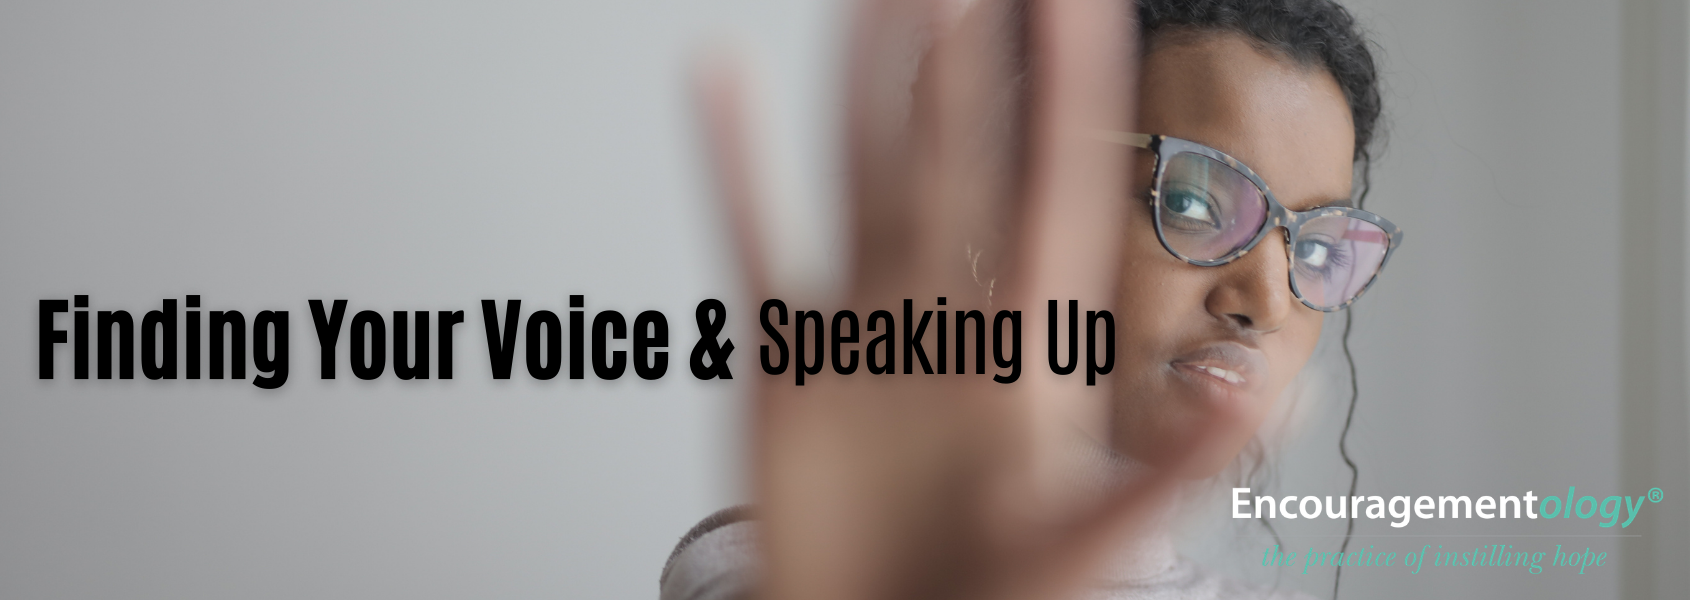 Finding Your Voice and Speaking Up